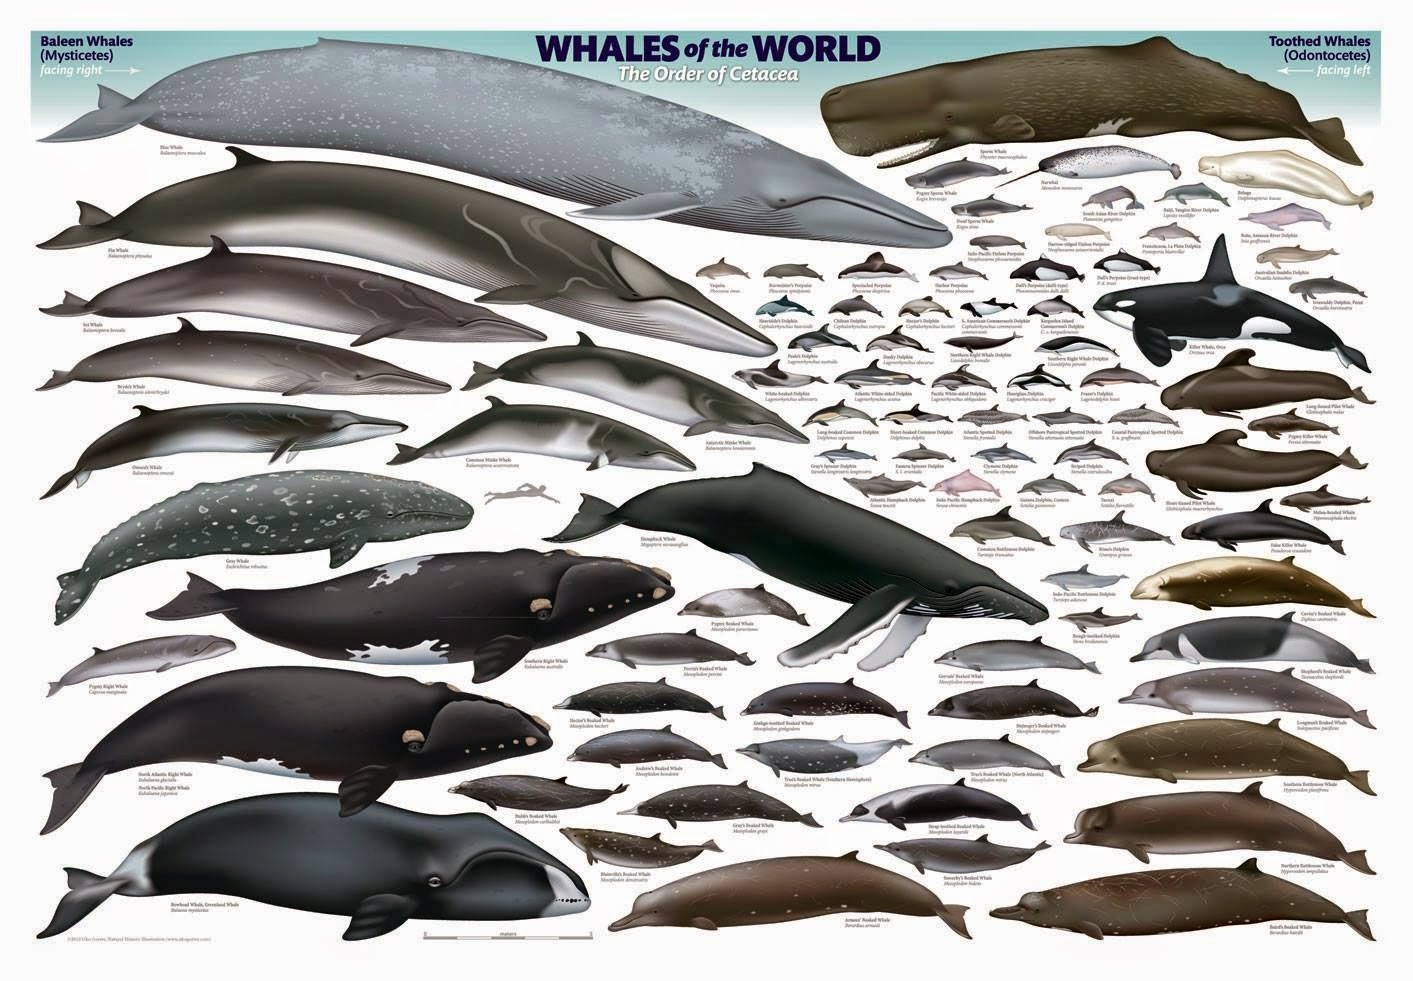 THE FAMILY OF CETACEA